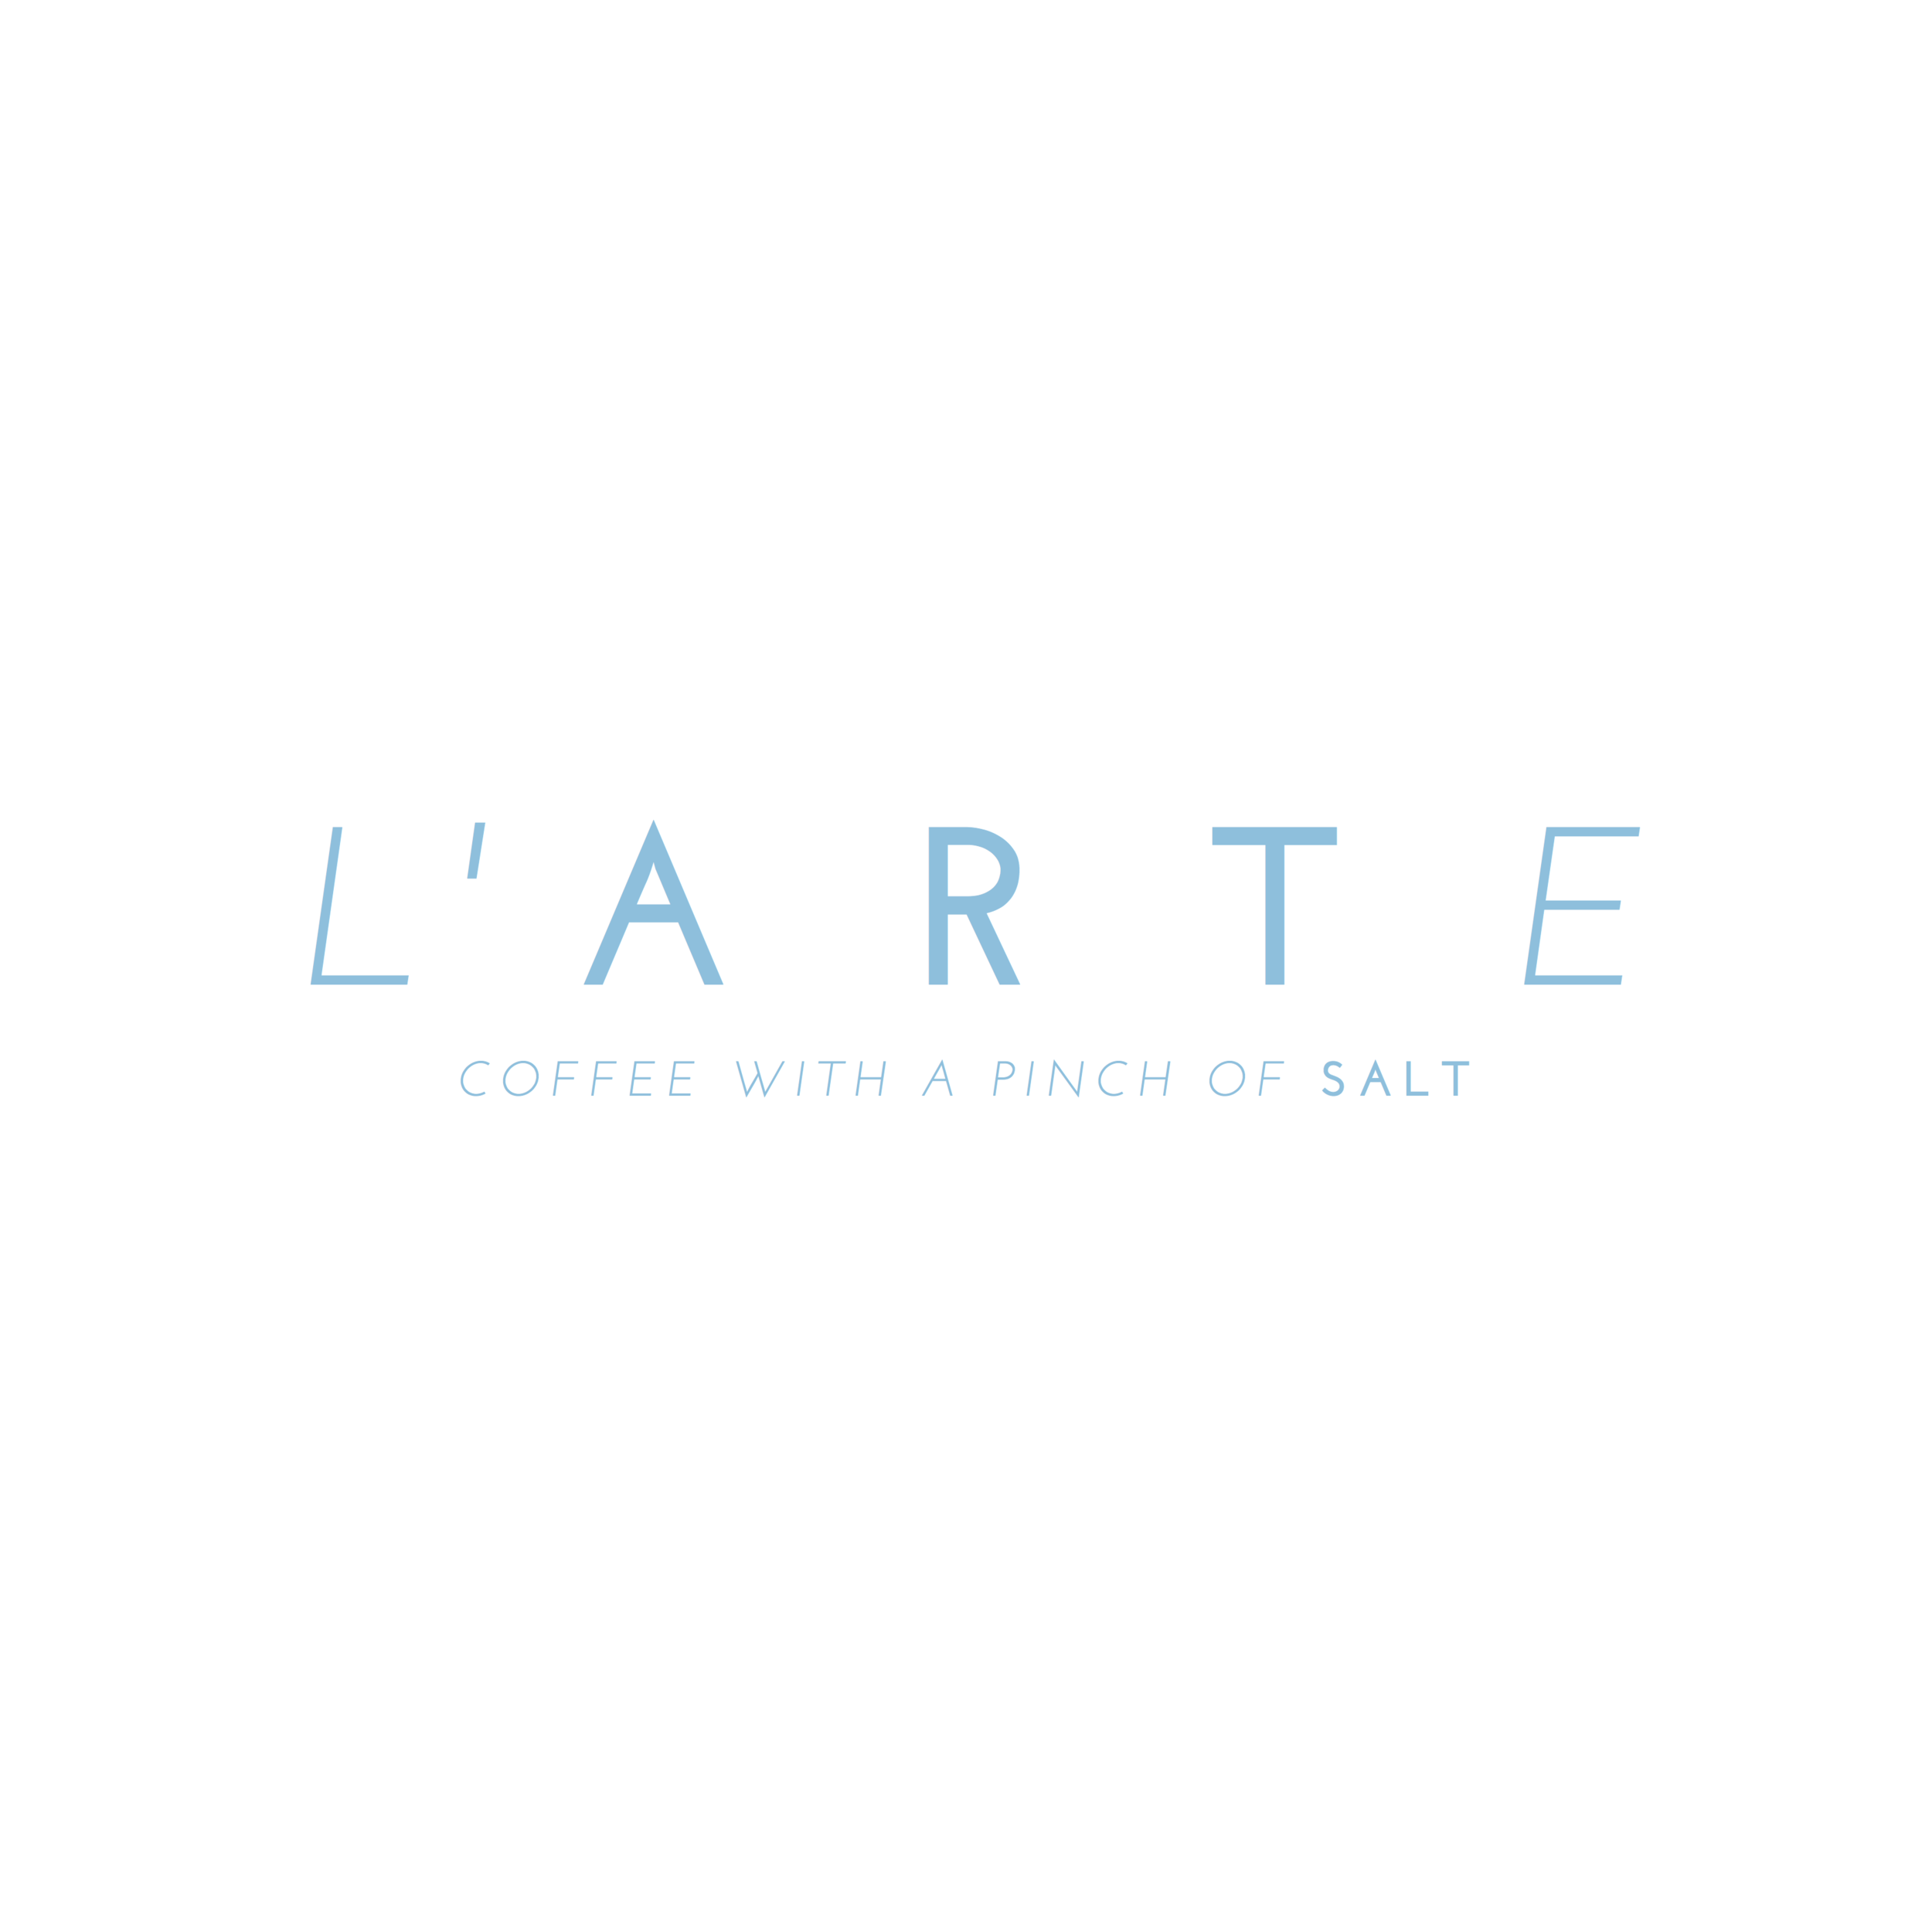 LARTE LOGO cups.png